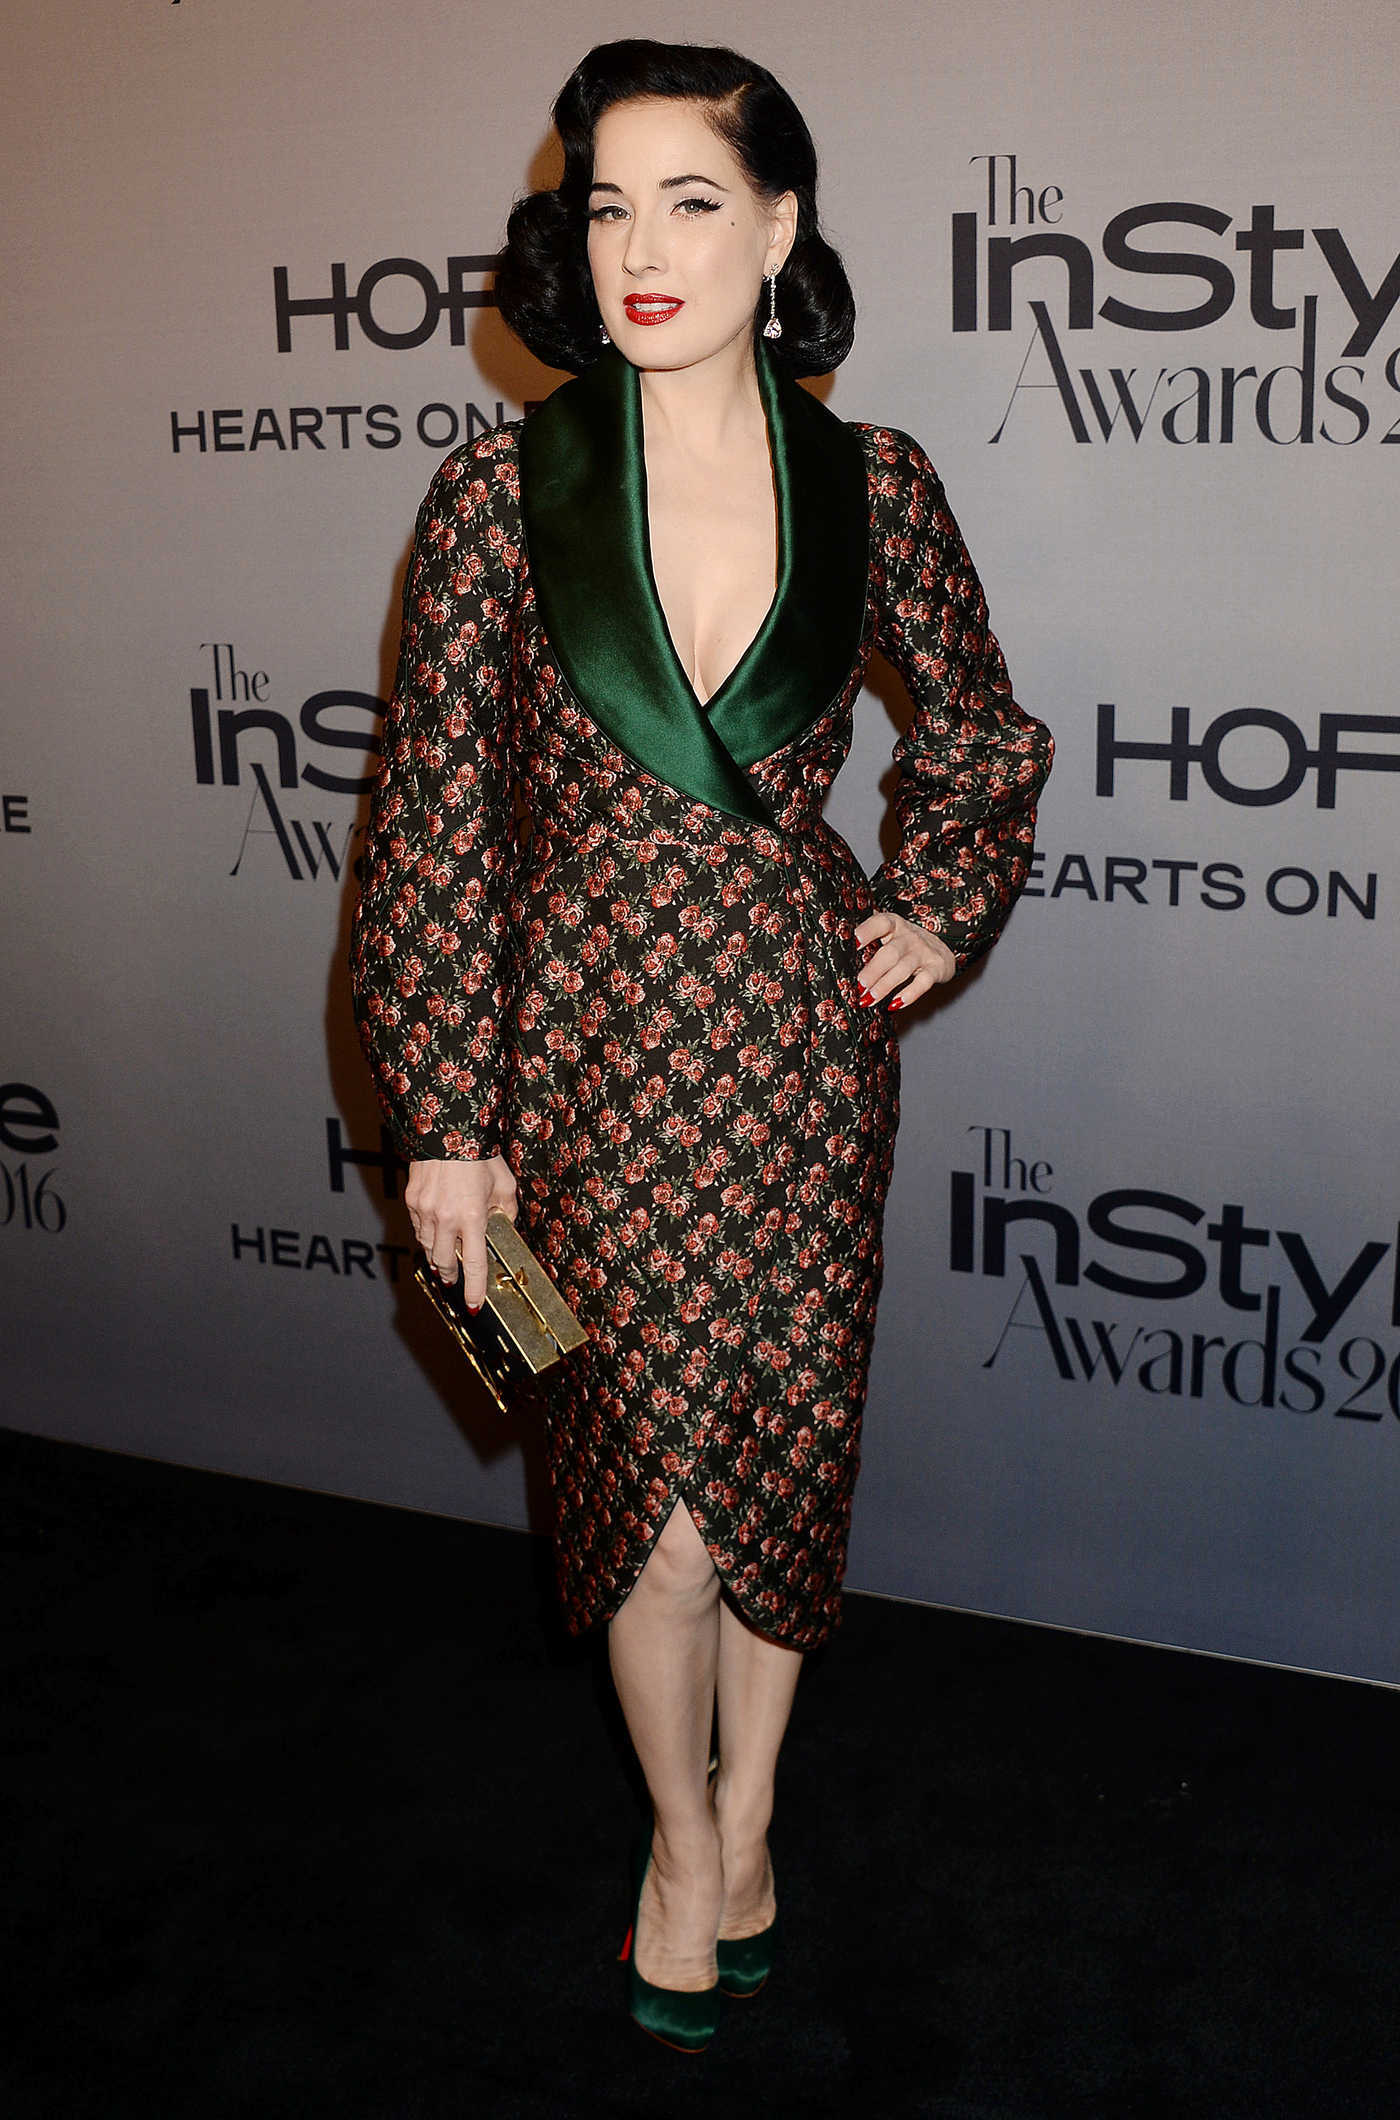 Dita Von Teese at the Instyle Awards 2016 in Los Angeles 10/24/2016